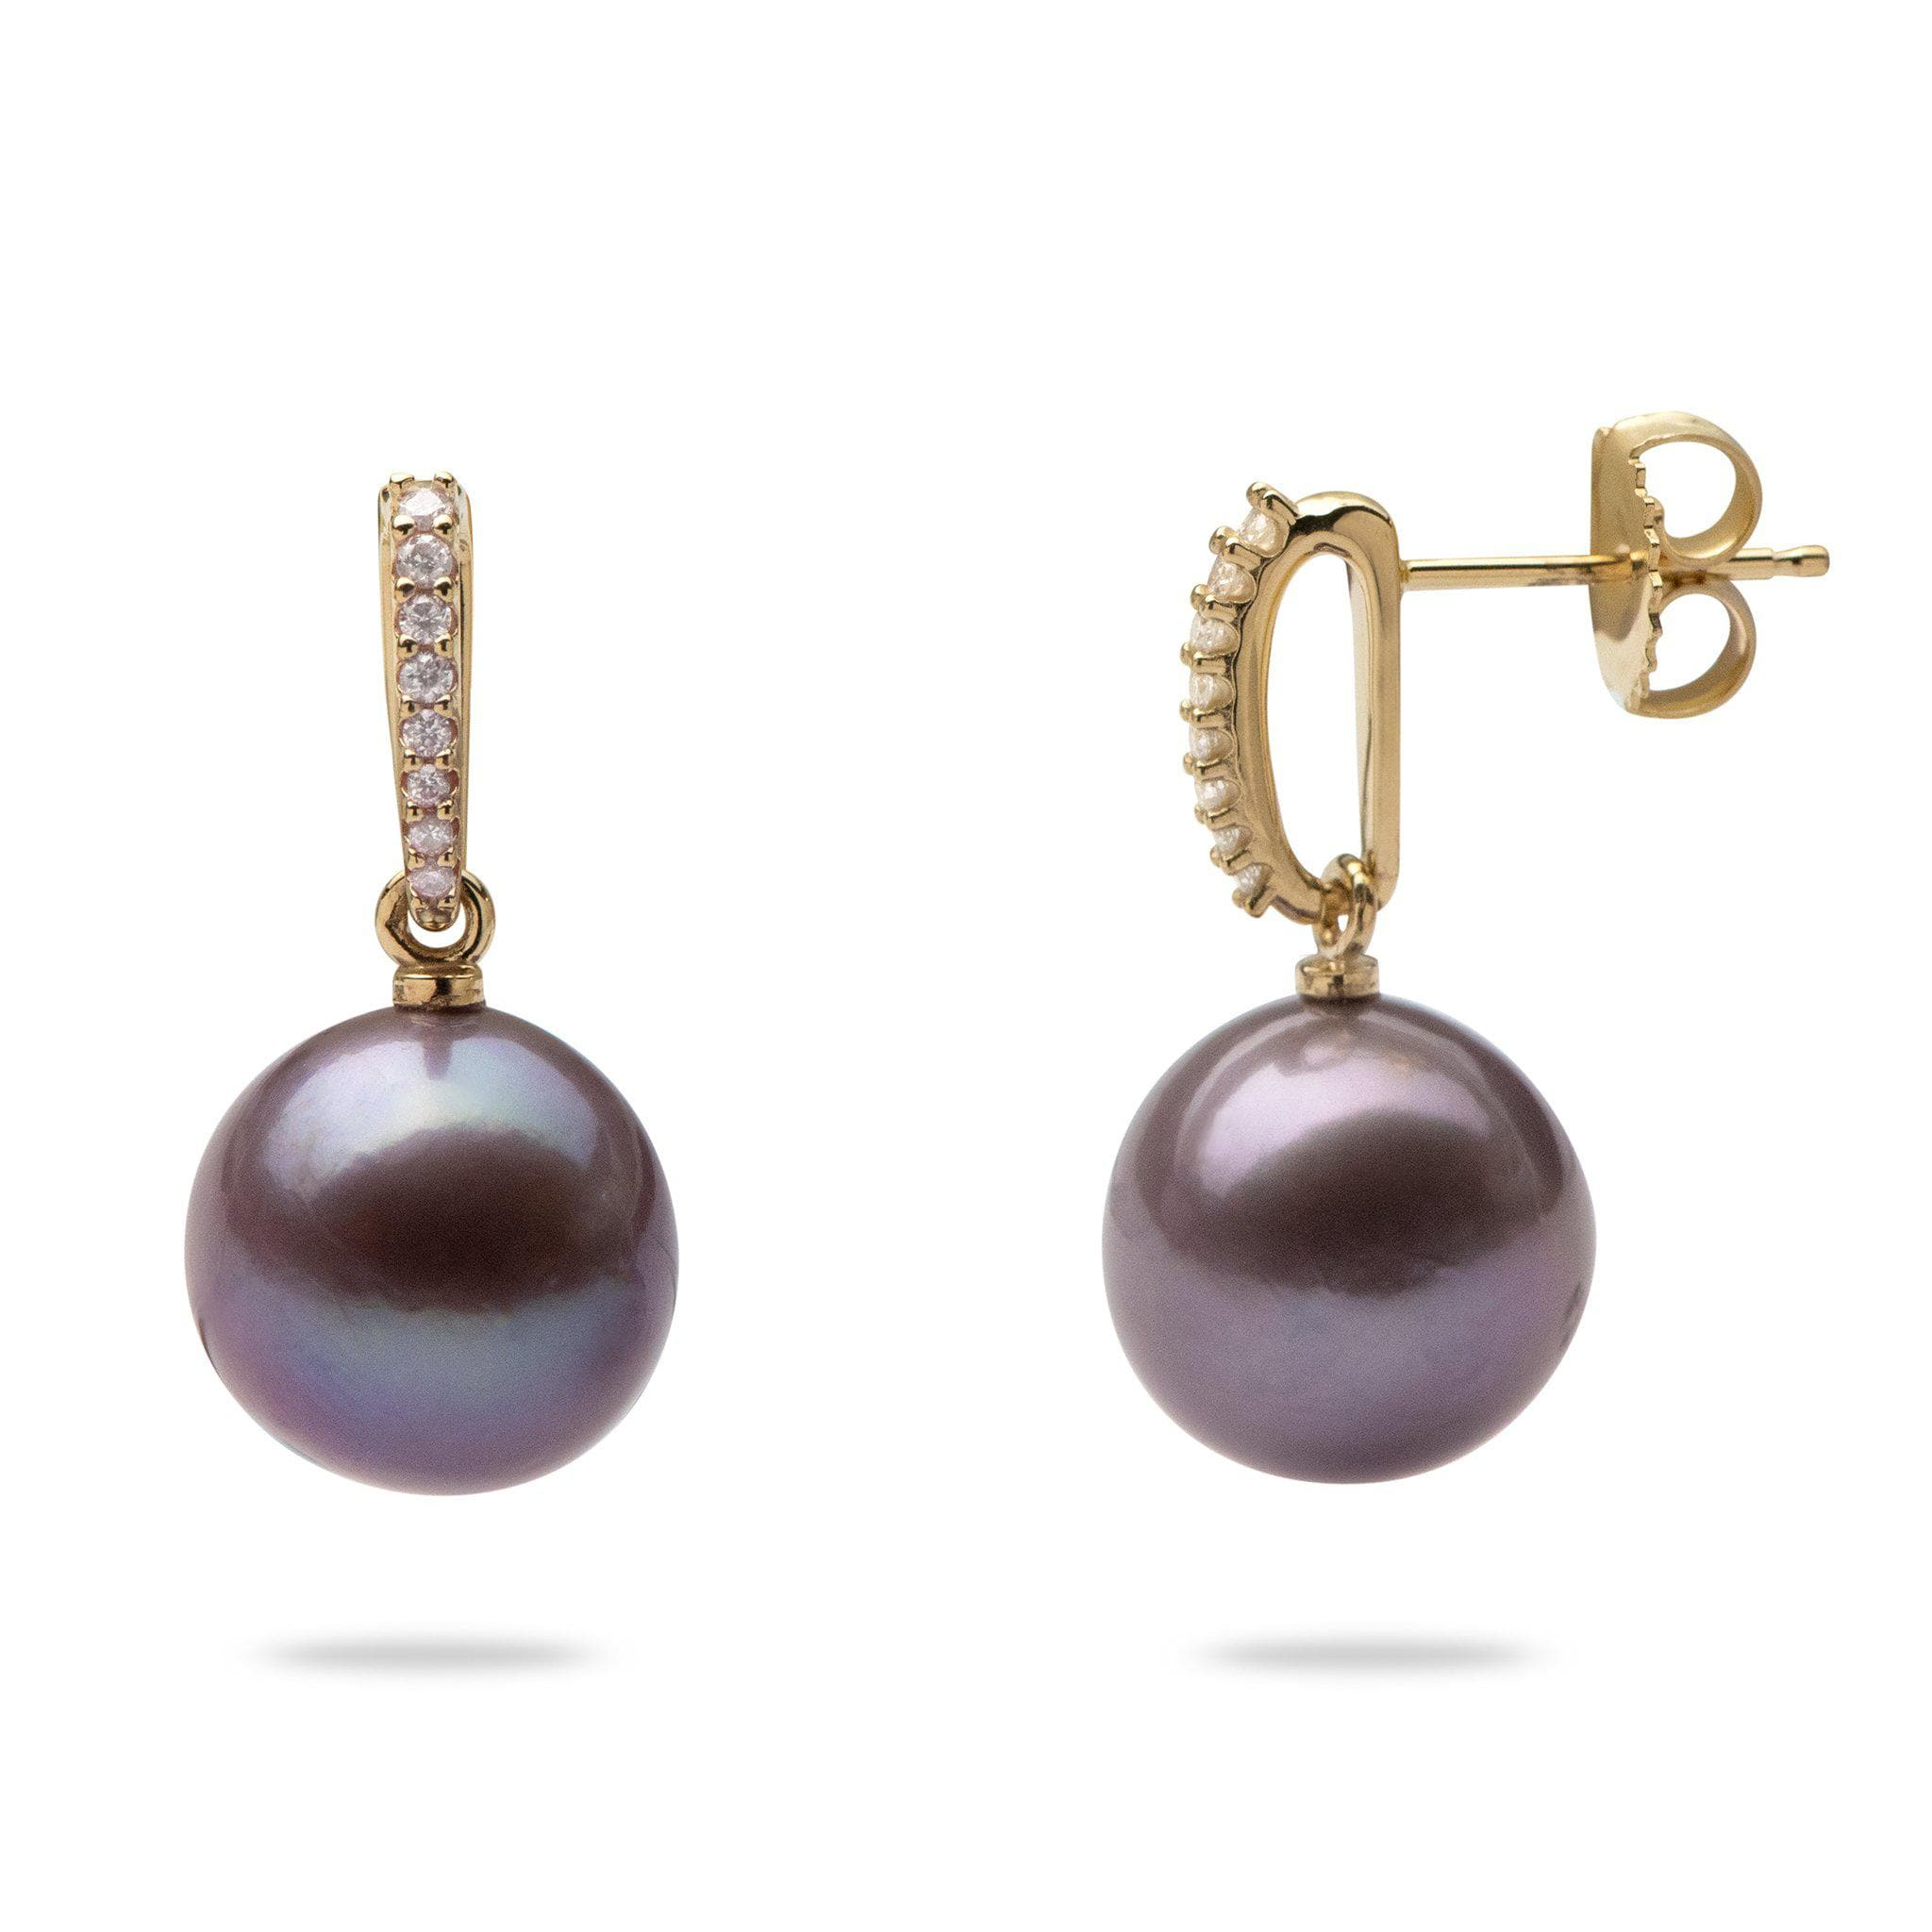 ce09b29d72c8e Ultraviolet Freshwater Pearl Earrings in 14K Yellow Gold with Diamonds